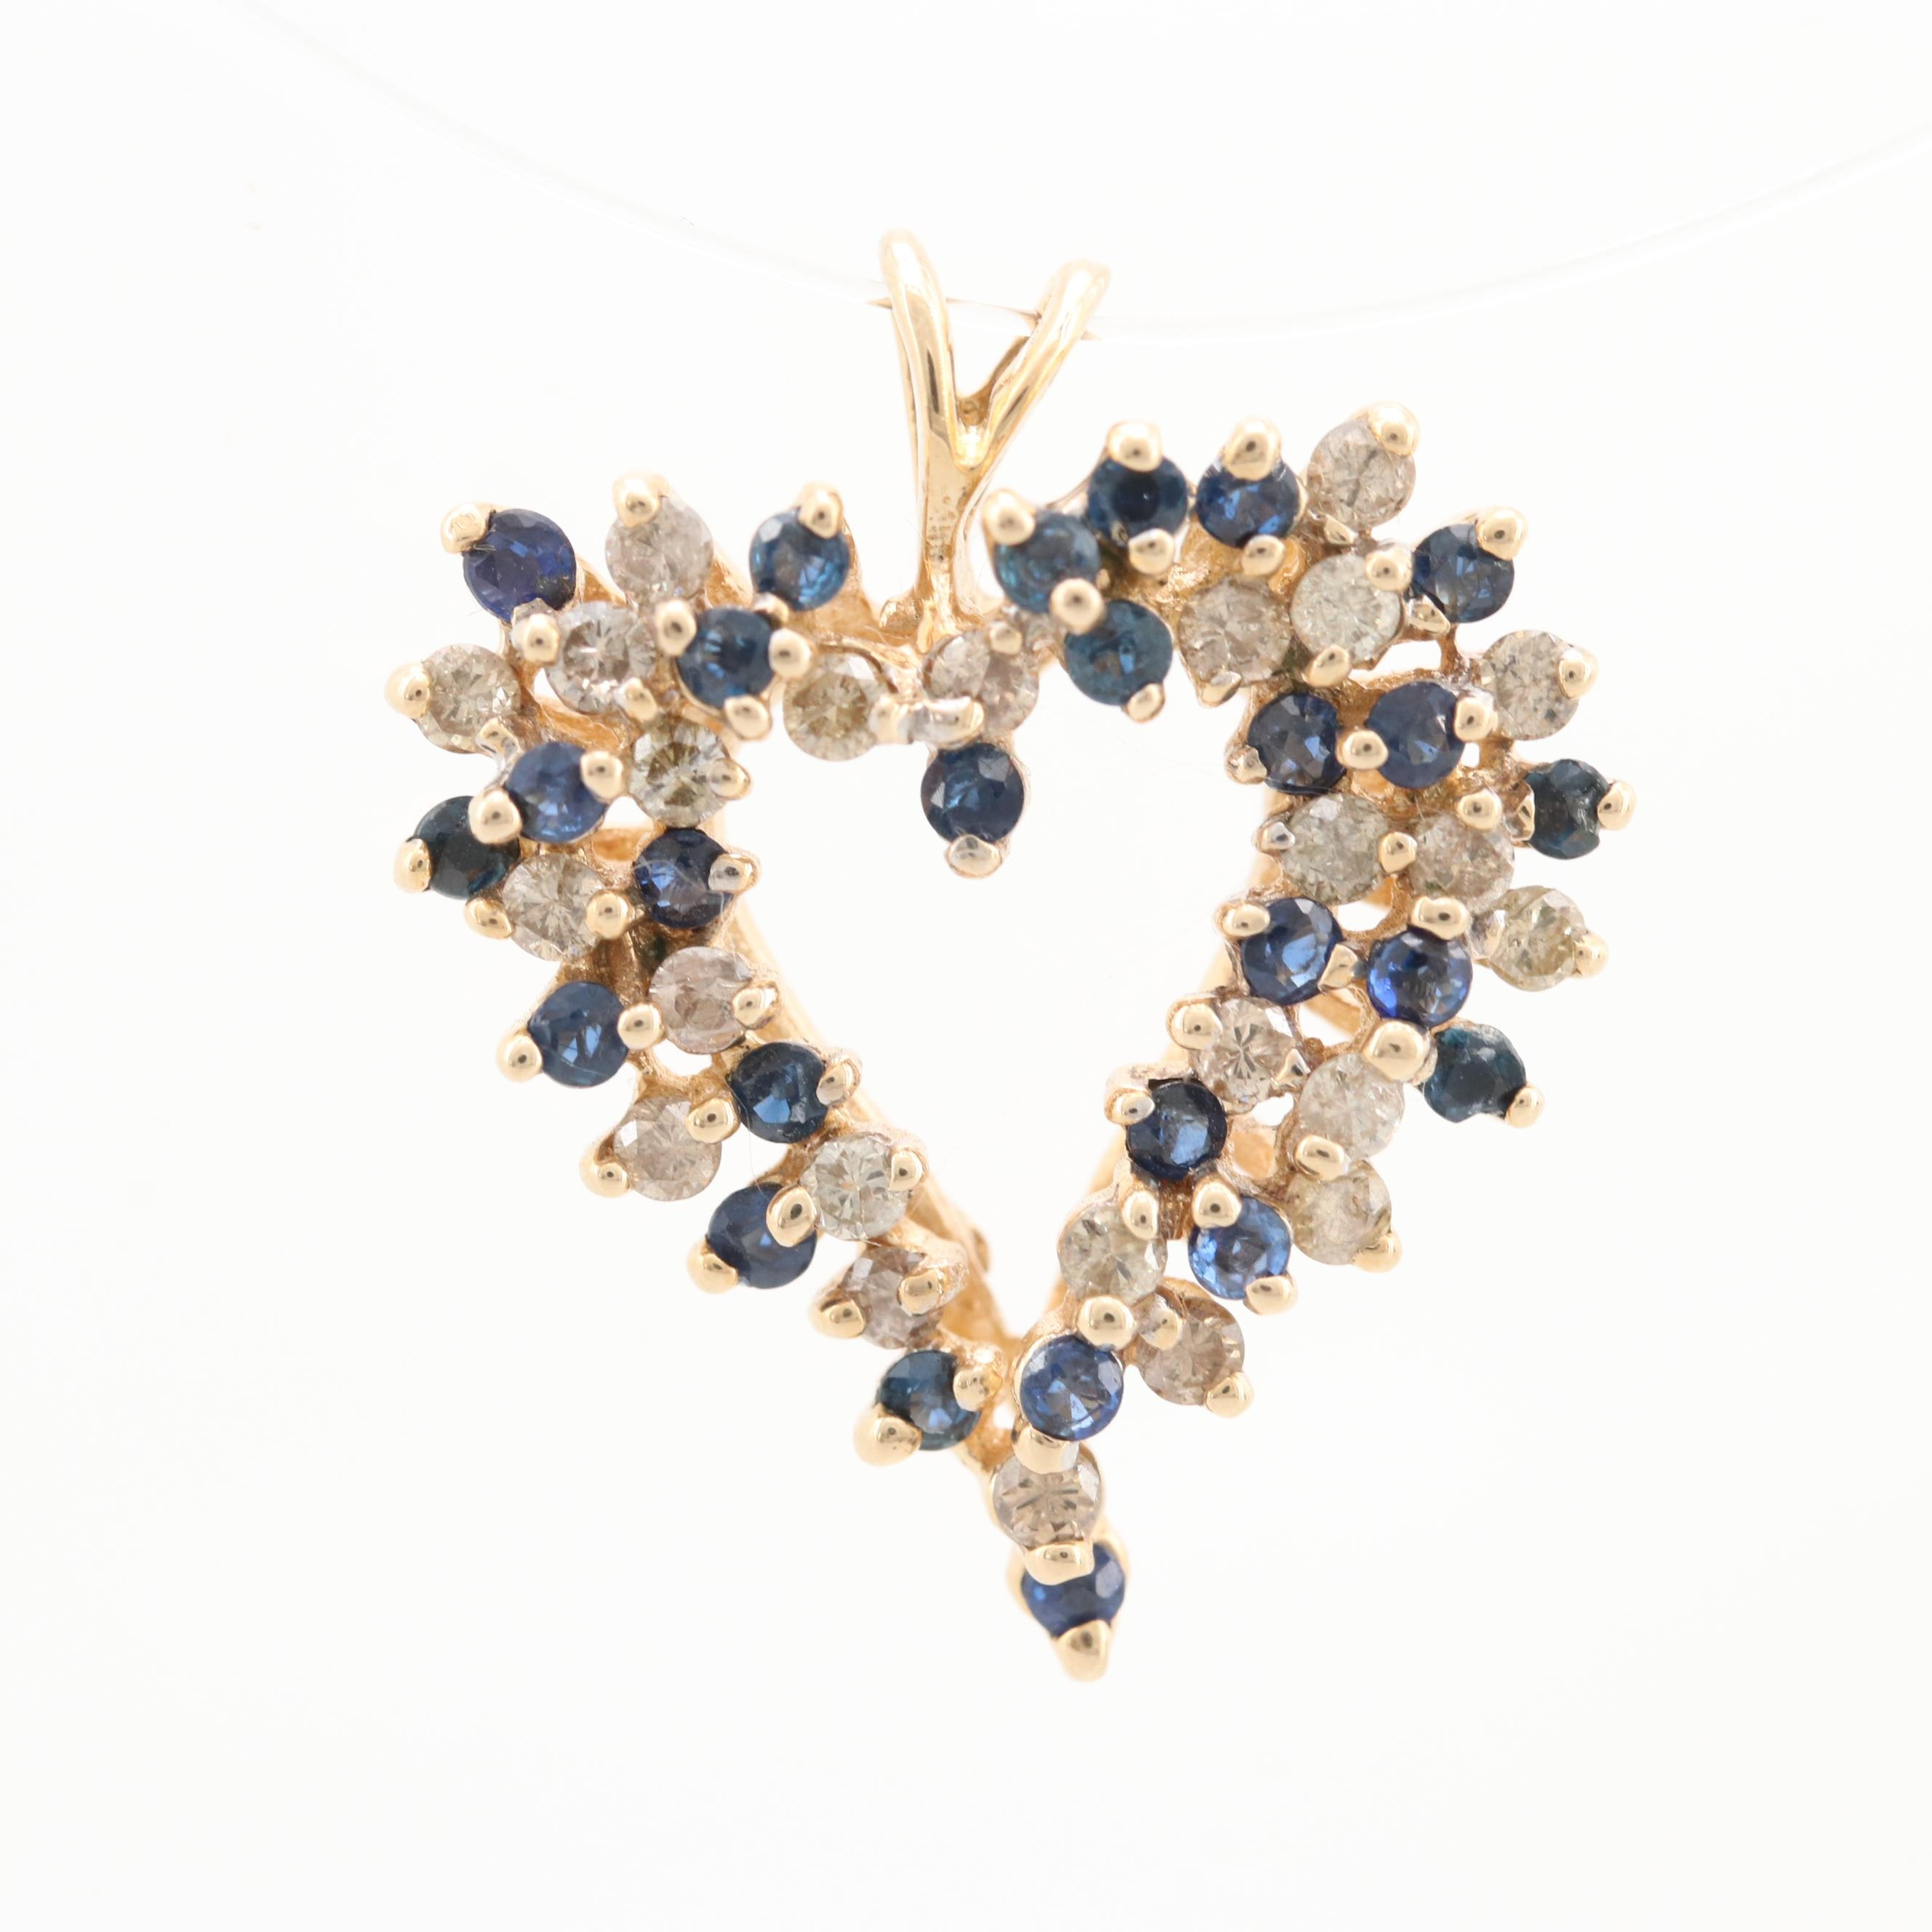 14K Yellow Gold Diamond and SapphireHeart Pendant